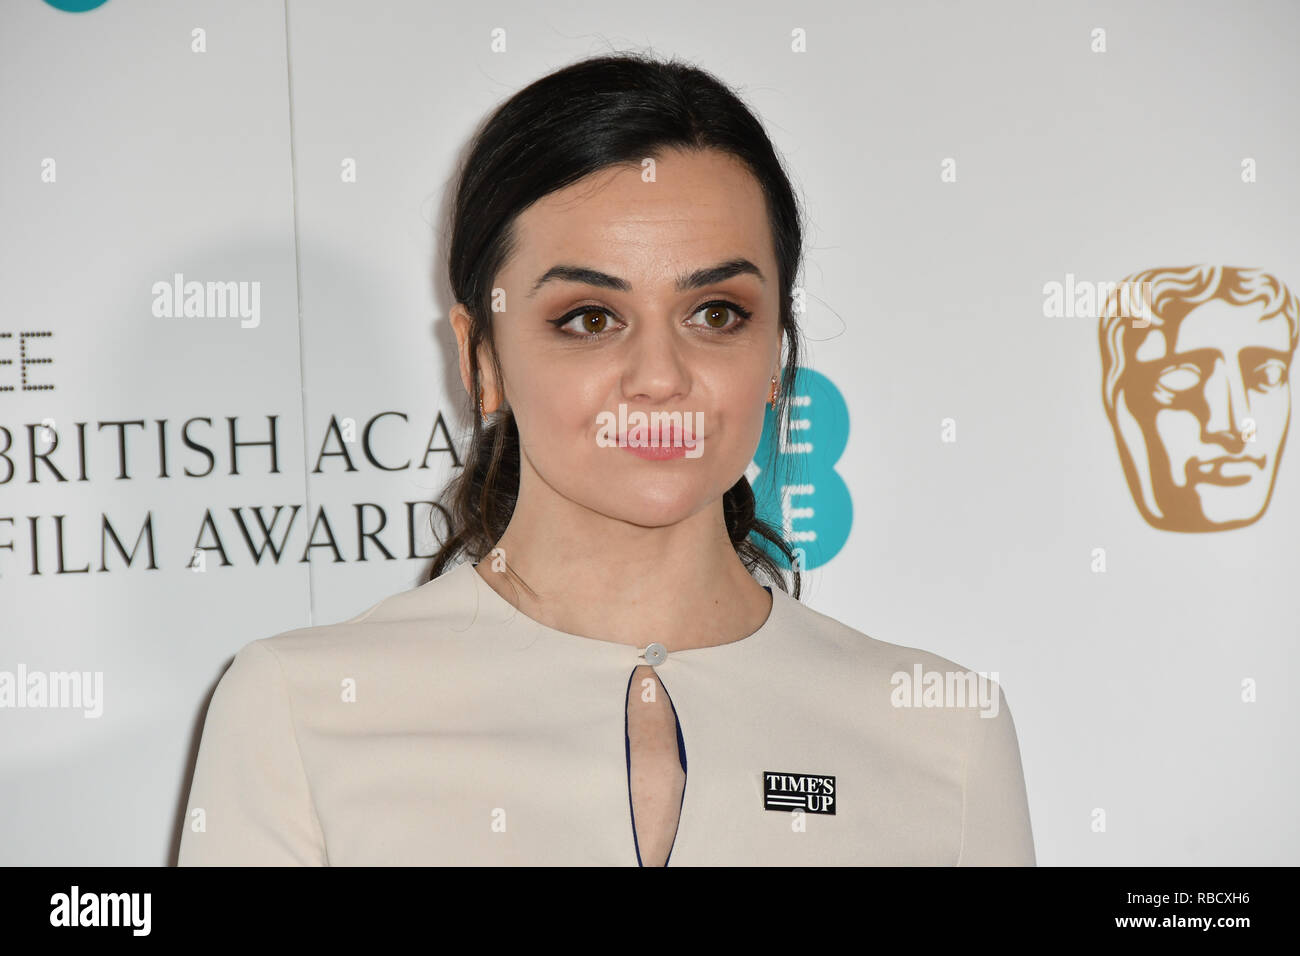 London, UK. 9th January, 2019. Hayley Squires attends the EE BAFTA Film Awards Nominations Announcement on 9 january 2019, london, UK. Credit: Picture Capital/Alamy Live News - Stock Image